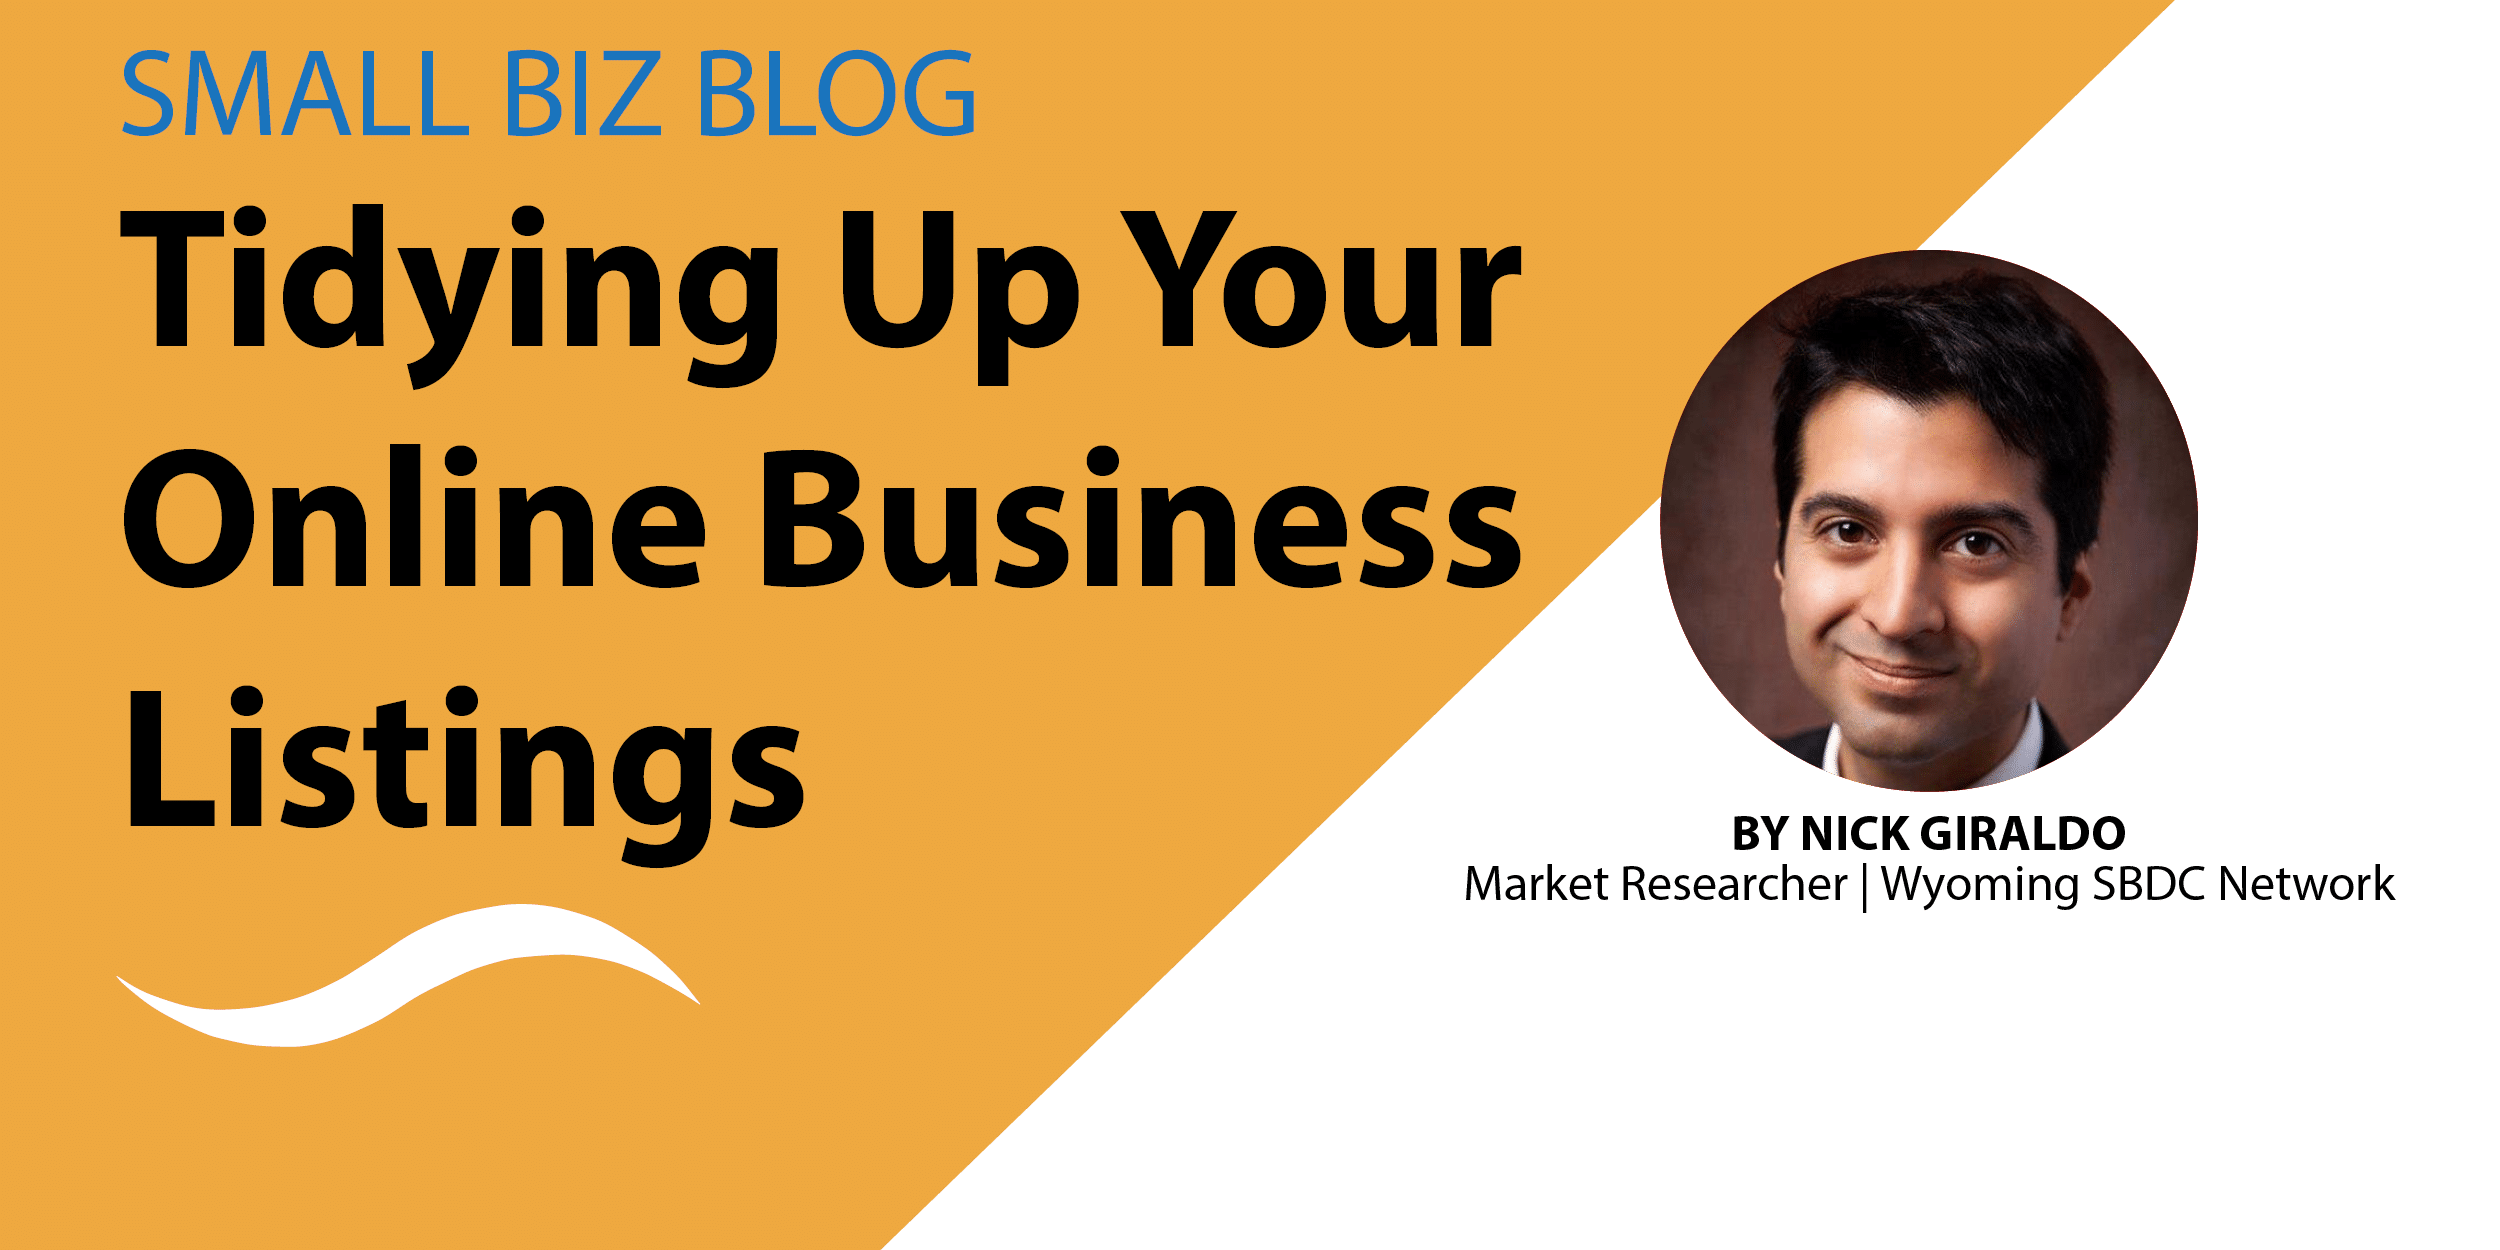 Tidying Up Your Online Business Listings